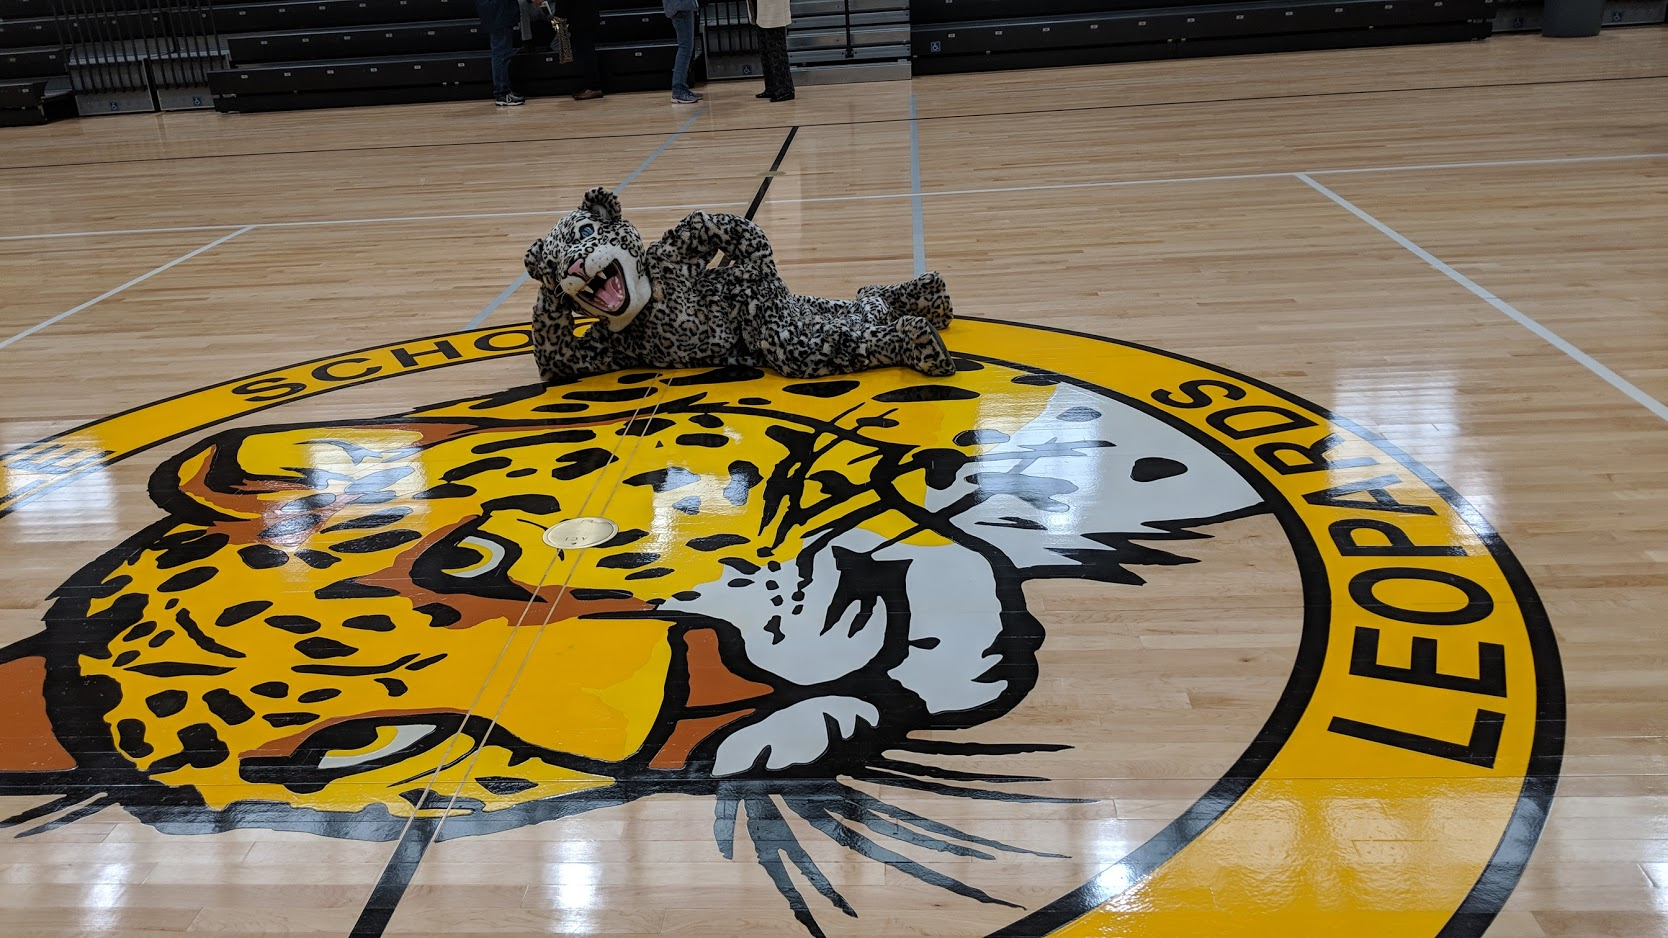 Gym Floor and Mascot image